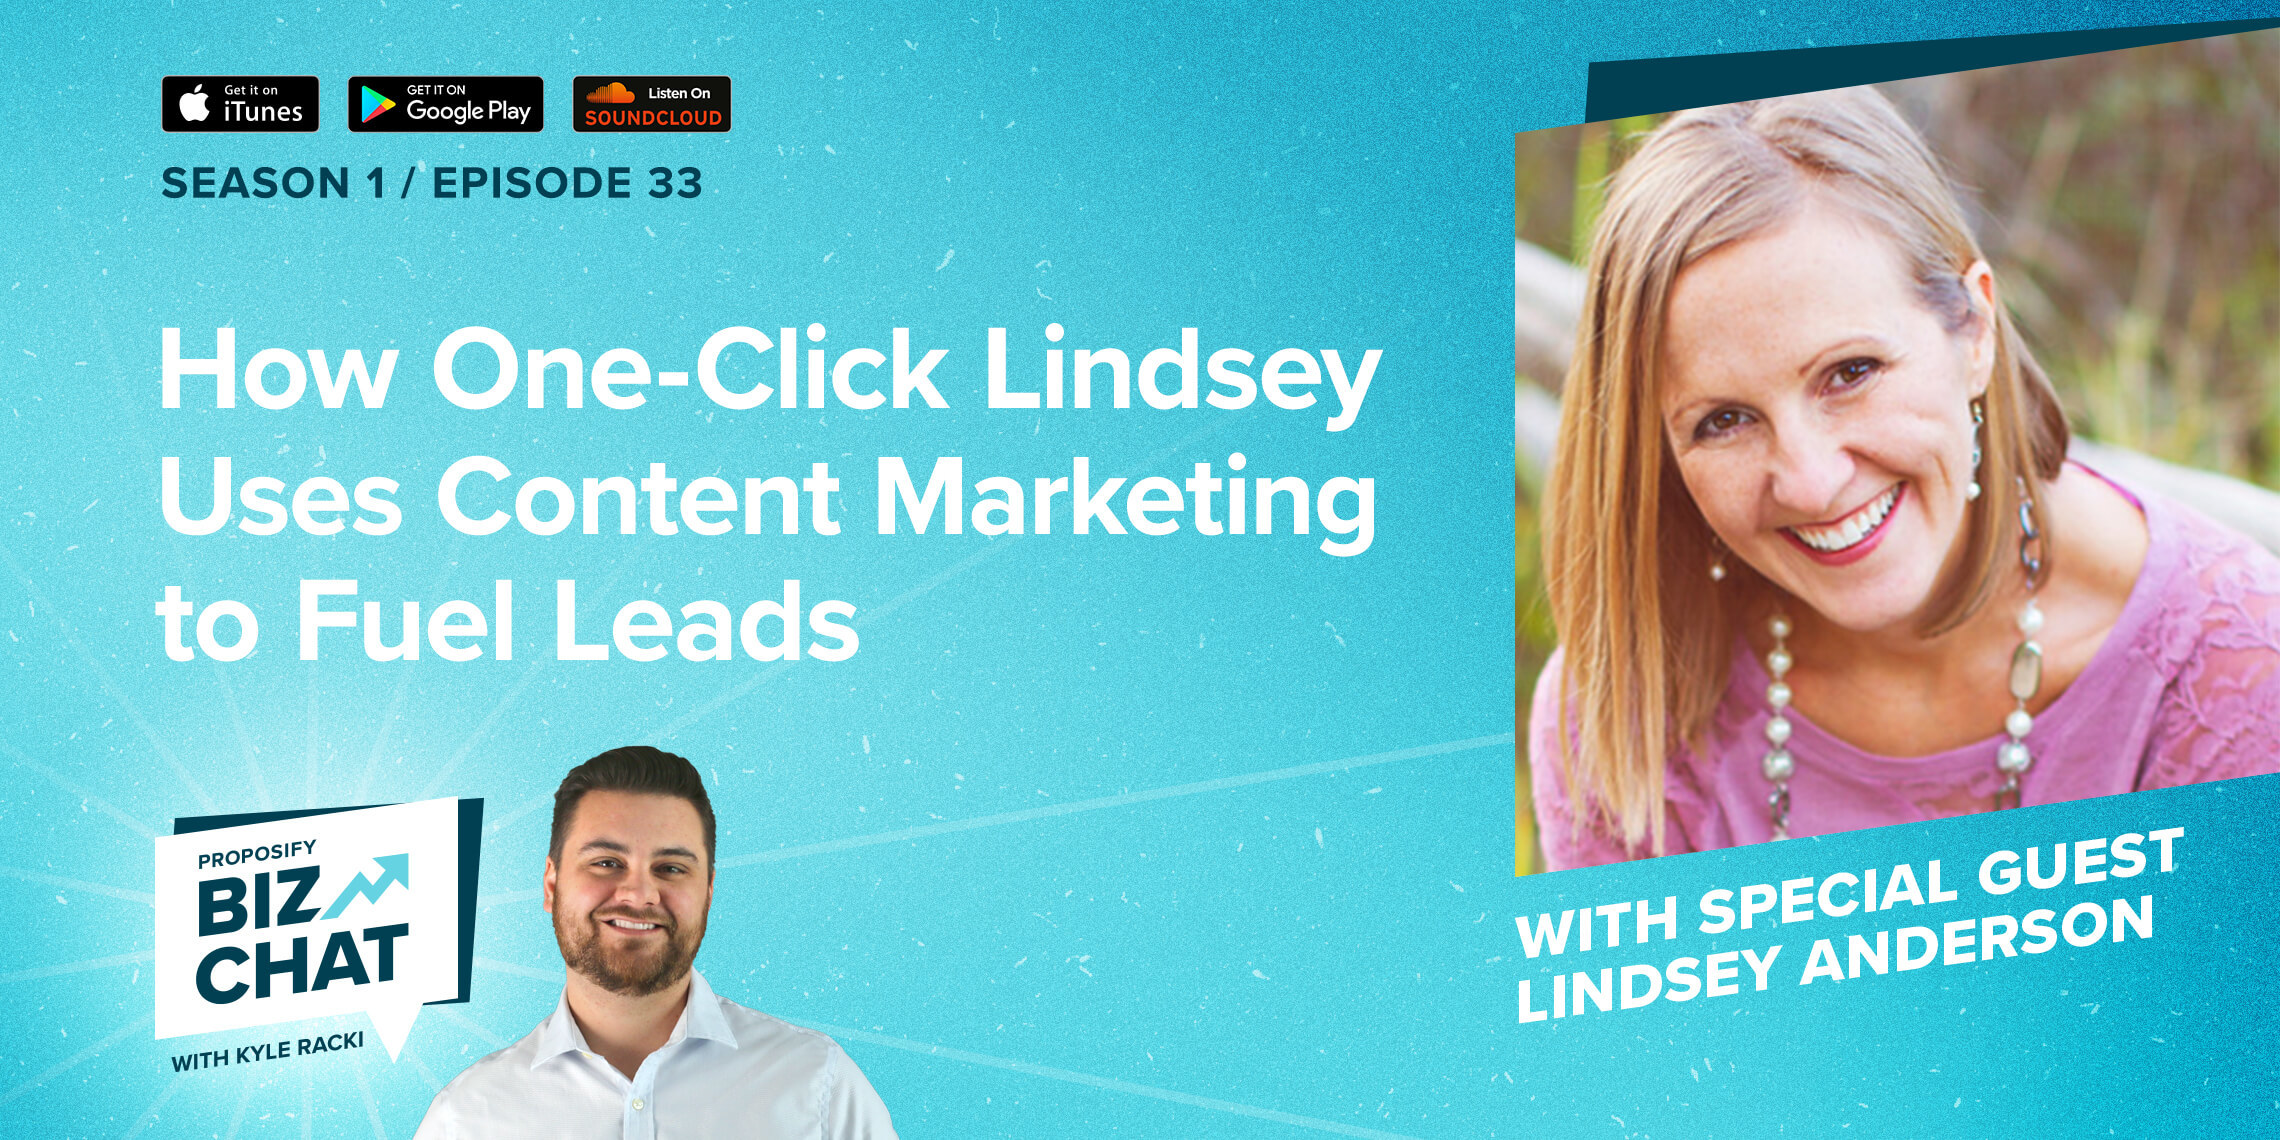 How One-Click Lindsey Uses Content Marketing to Fuel Leads